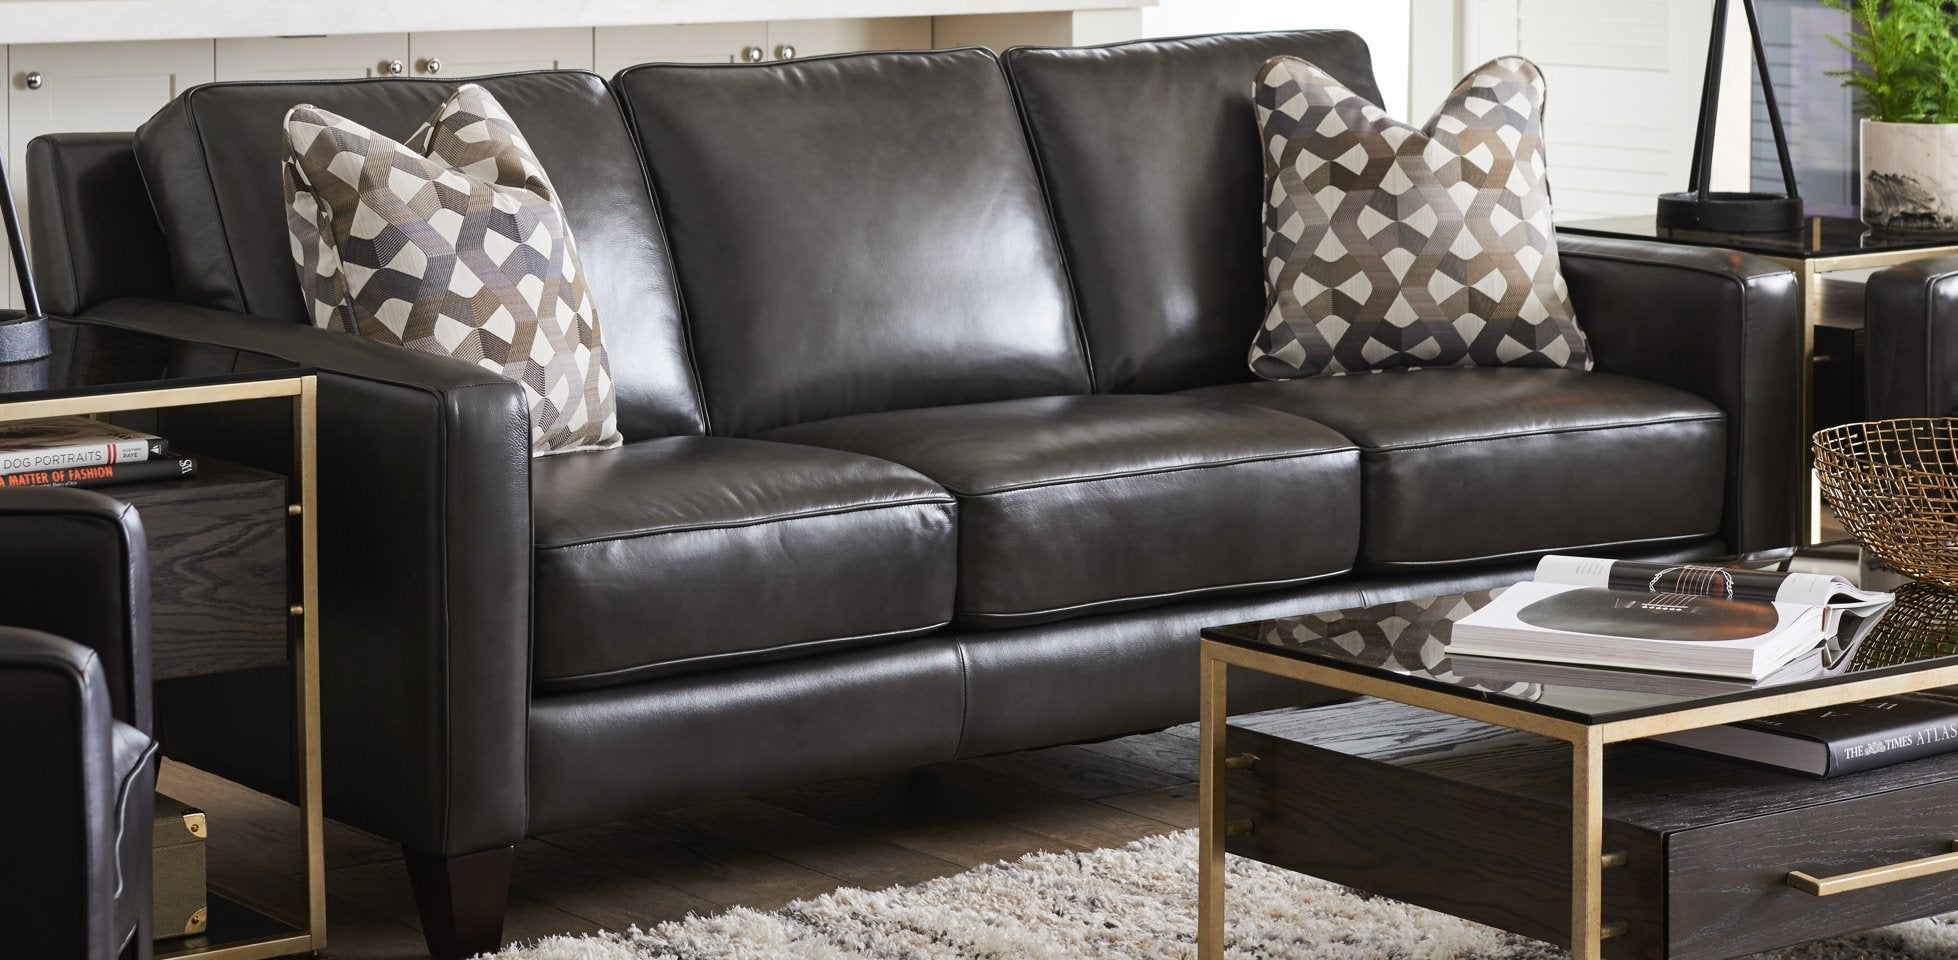 Living room with leather Meyer Sofa